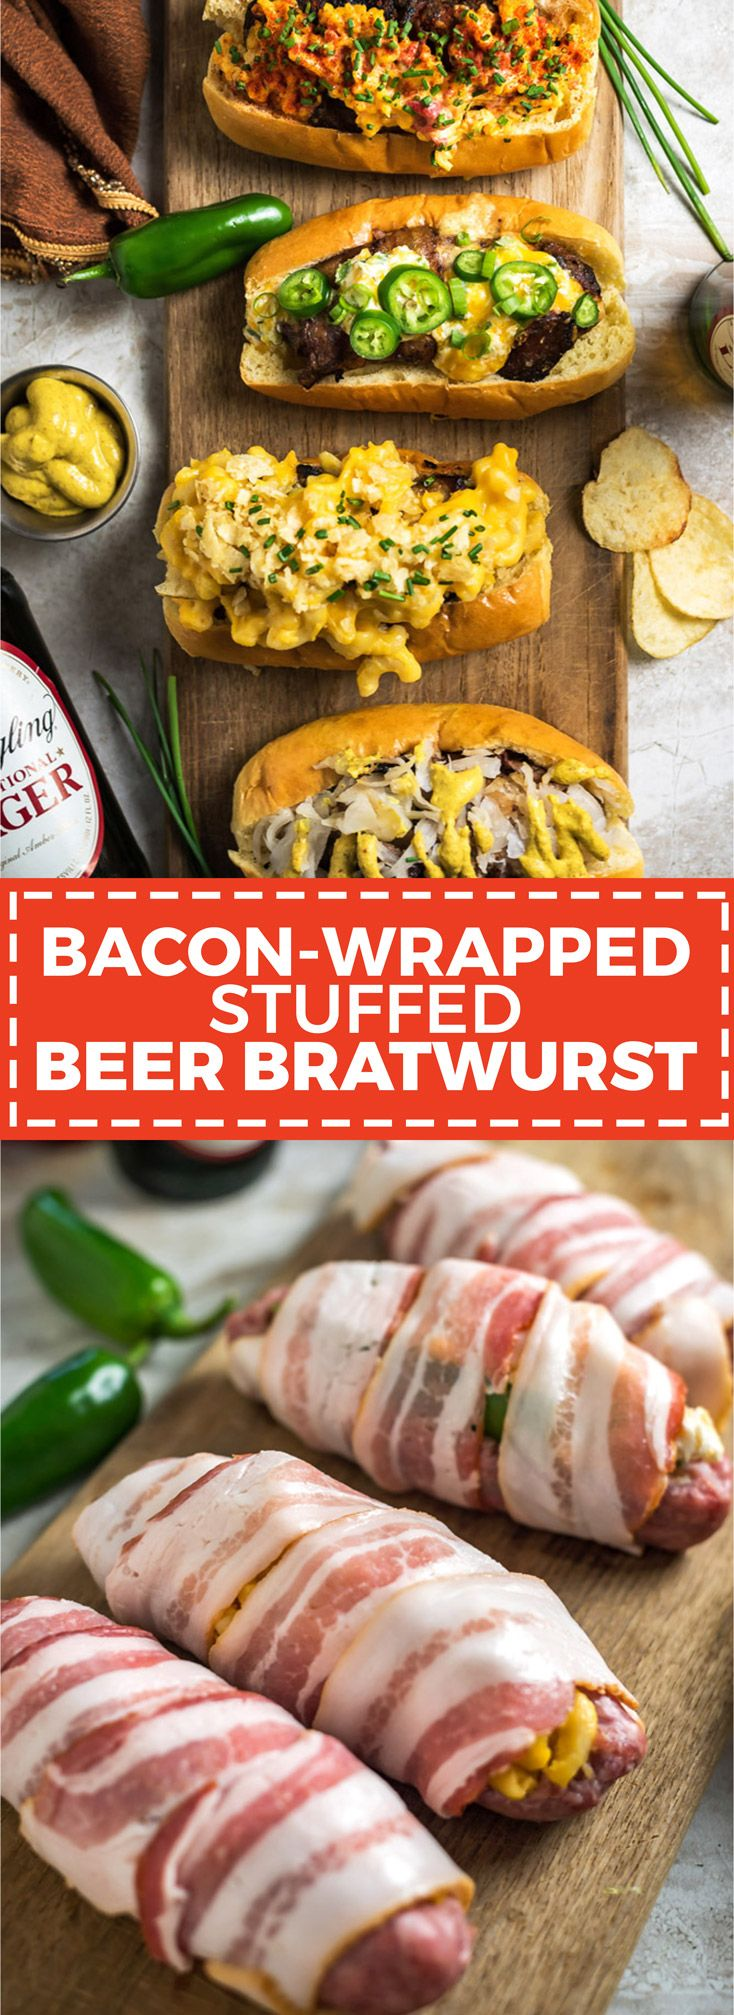 Bacon-Wrapped Stuffed Beer Bratwurst. Don't just put the toppings on your beer brats, put them *in* them, too! Stuff 'em, wrap 'em in bacon, and grill 'em until crisp. Click through for 4 filling ideas including mac & cheese, pimento cheese, sauerkraut, and jalapeño popper. | AD Smithfield BeerBrats | hostthetoast.com